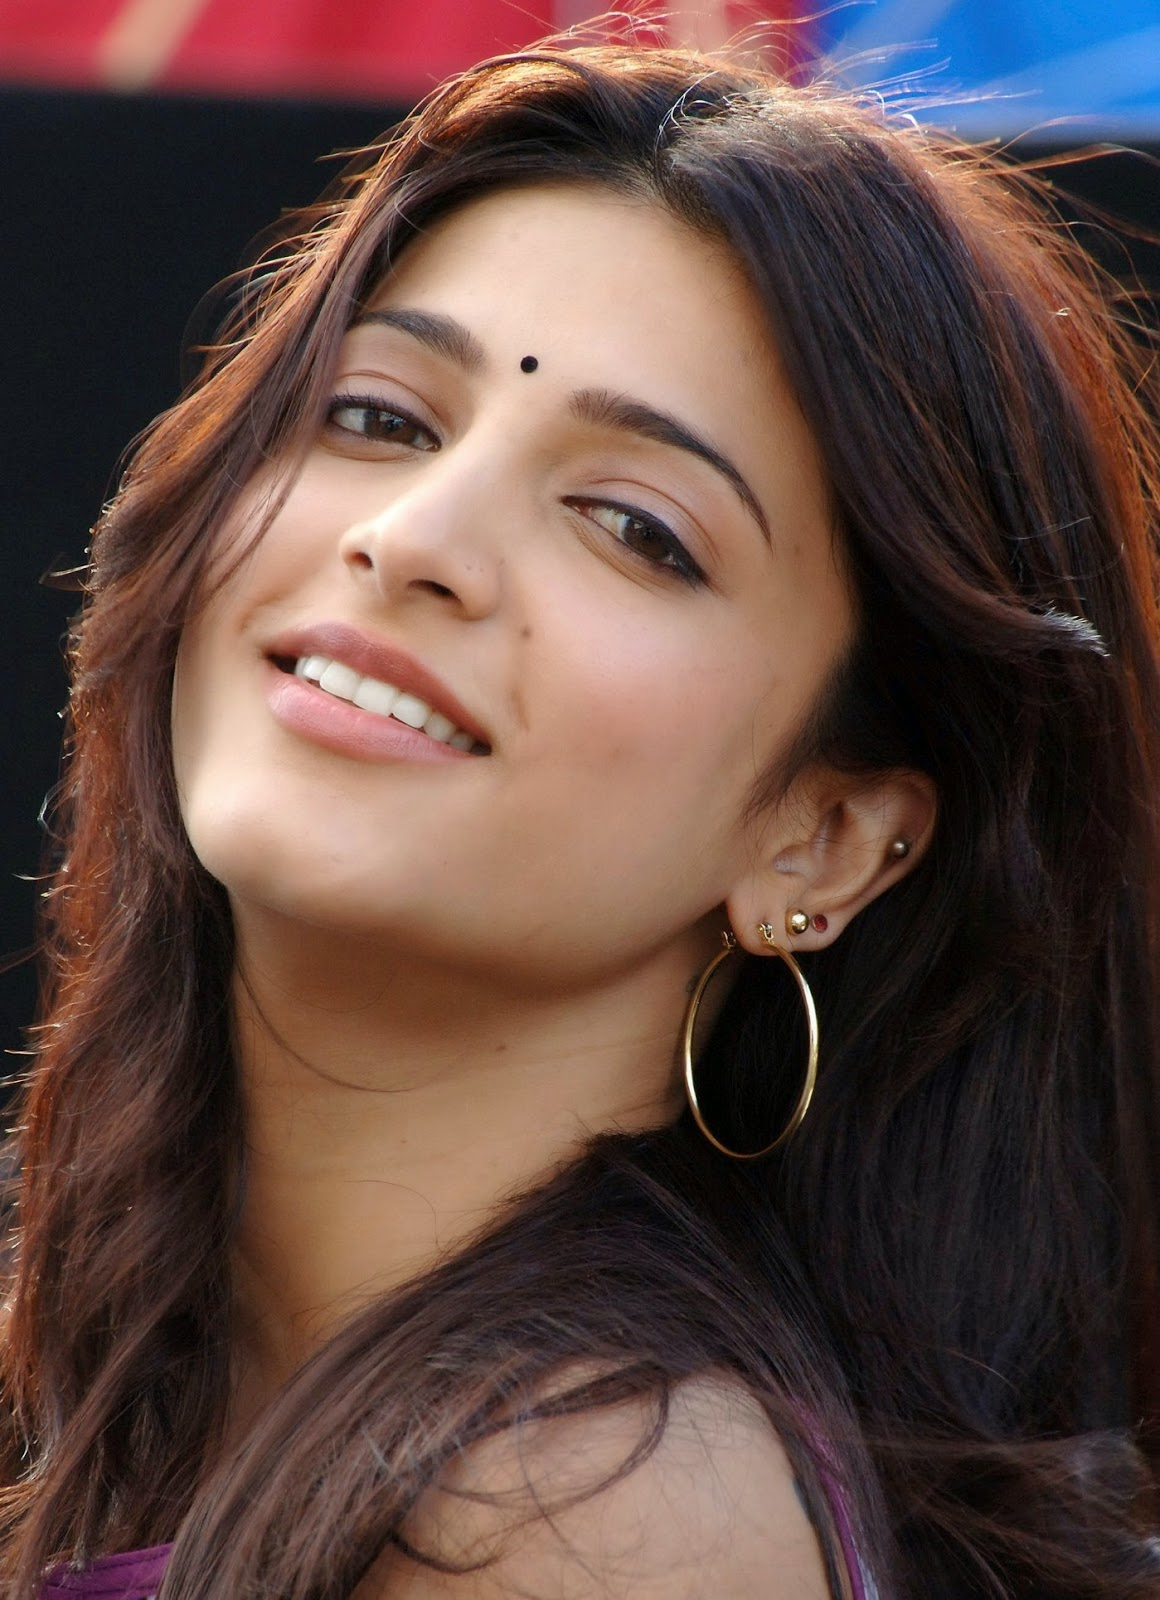 shruti hassan hot smiley pictures